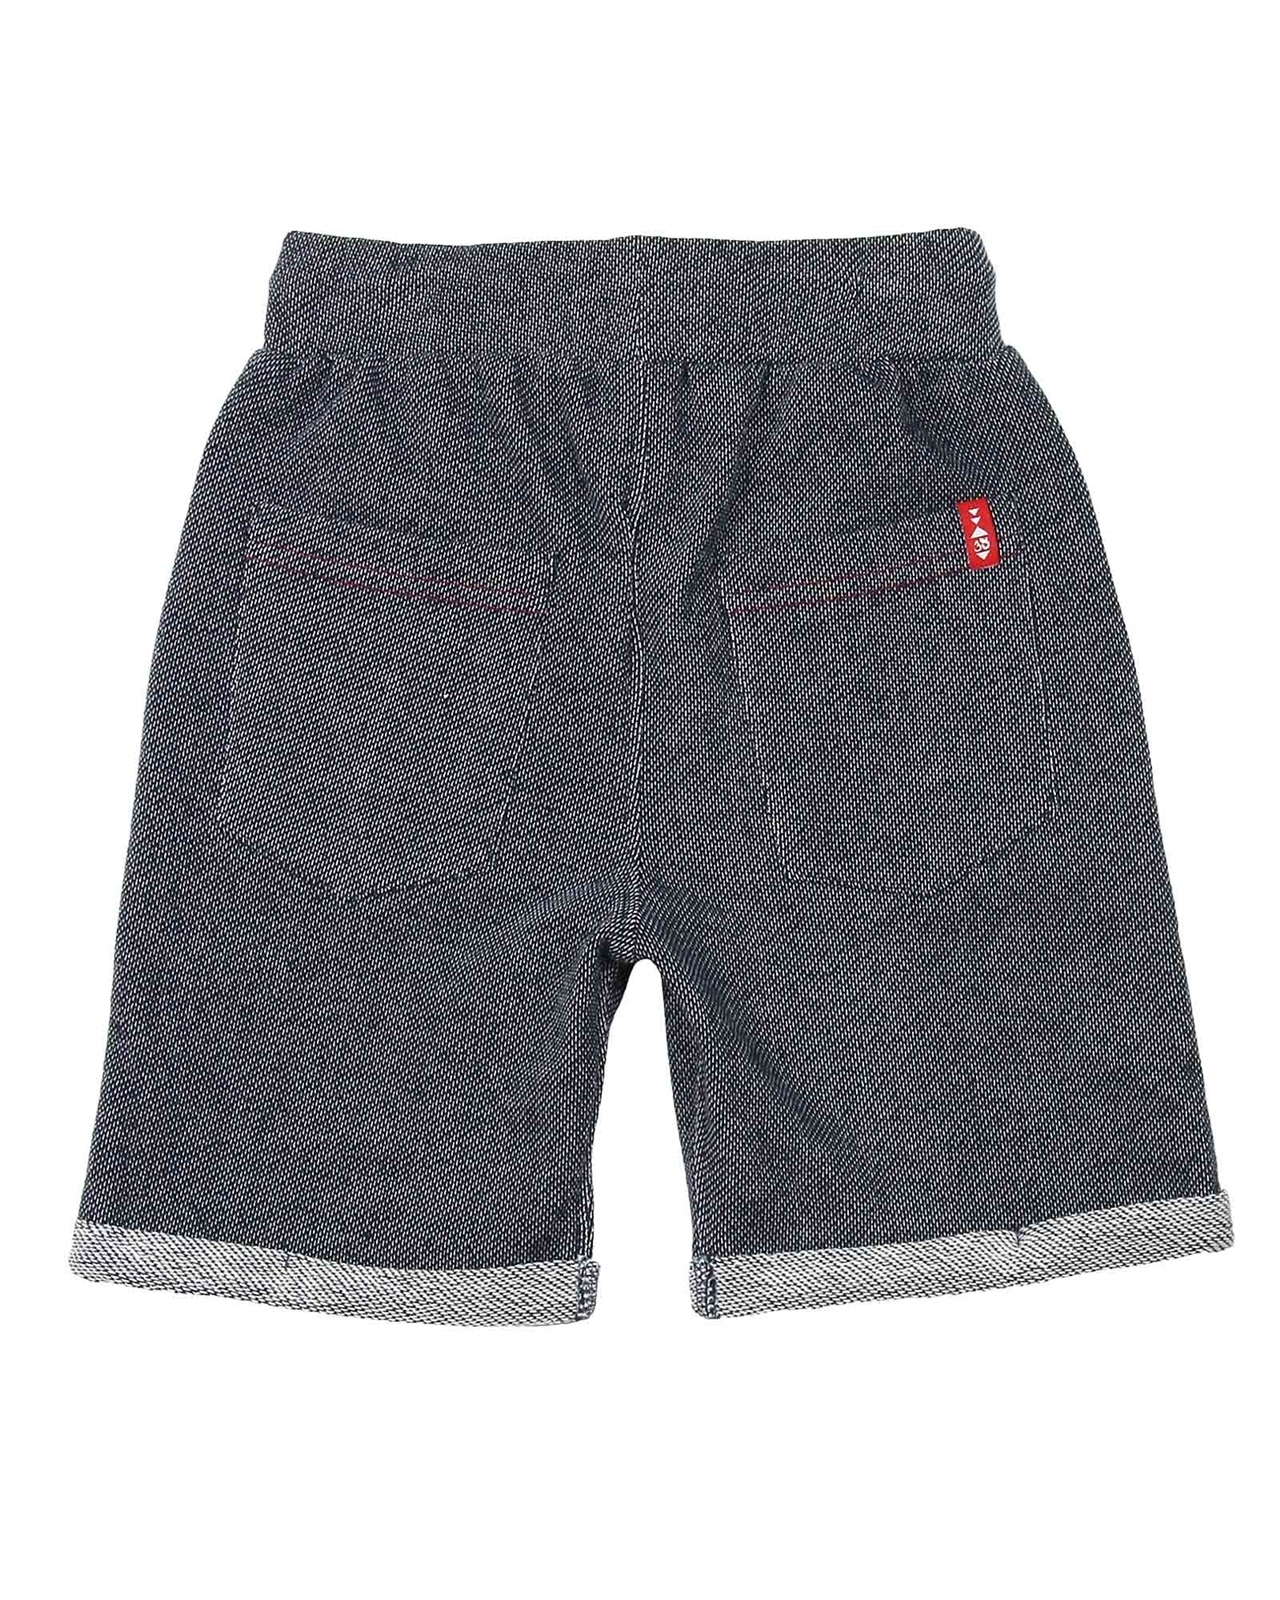 64f887237e 3POMMES Boy's Terry Shorts Cargo Graphic, Sizes 4-12